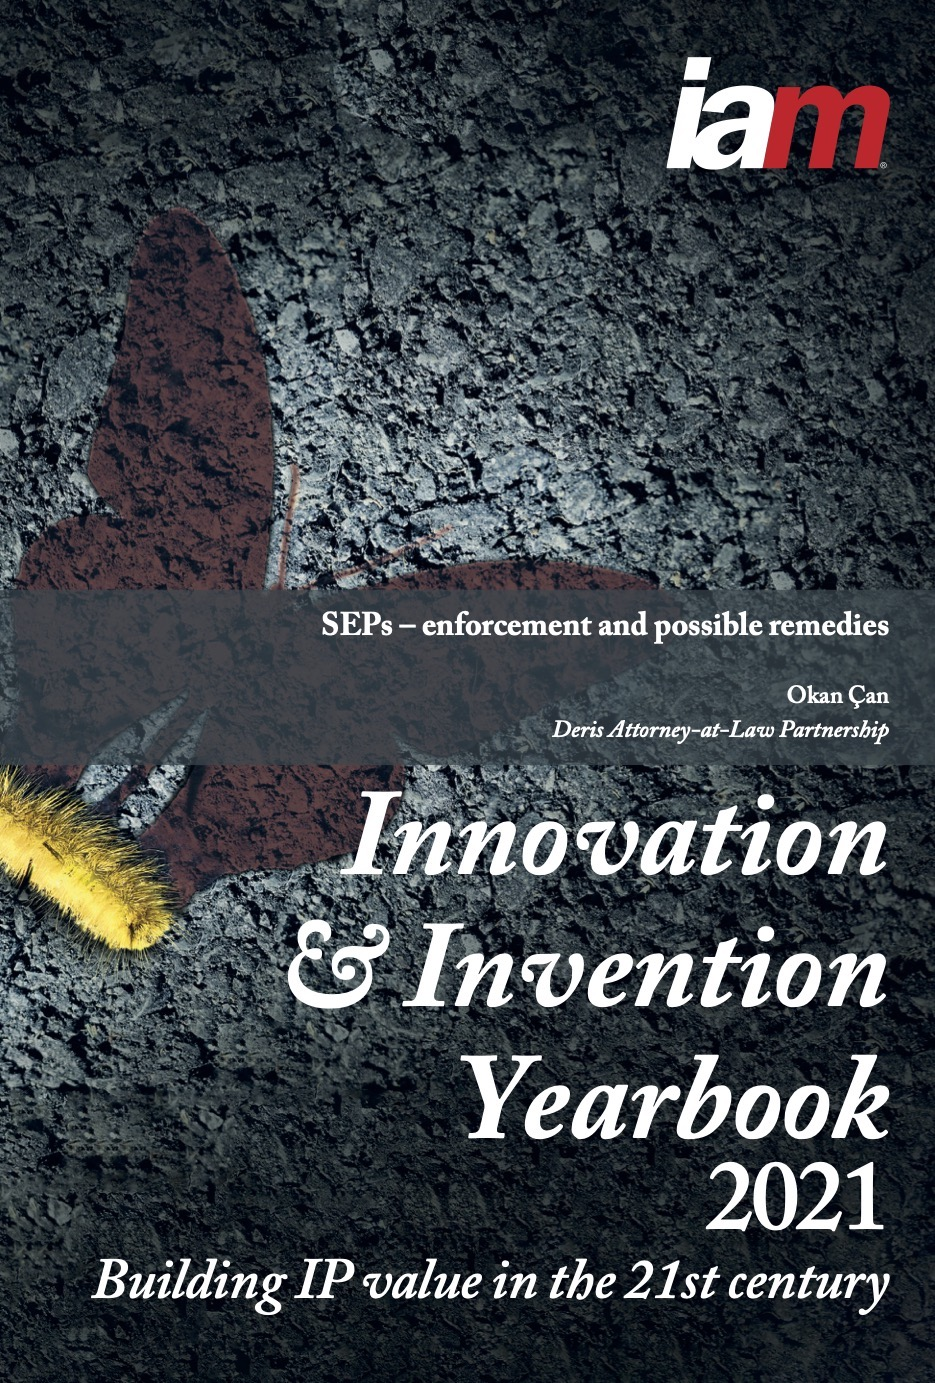 SEPs – Enforcement and Possible Remedies - Innovation and Invention Yearbook 2021